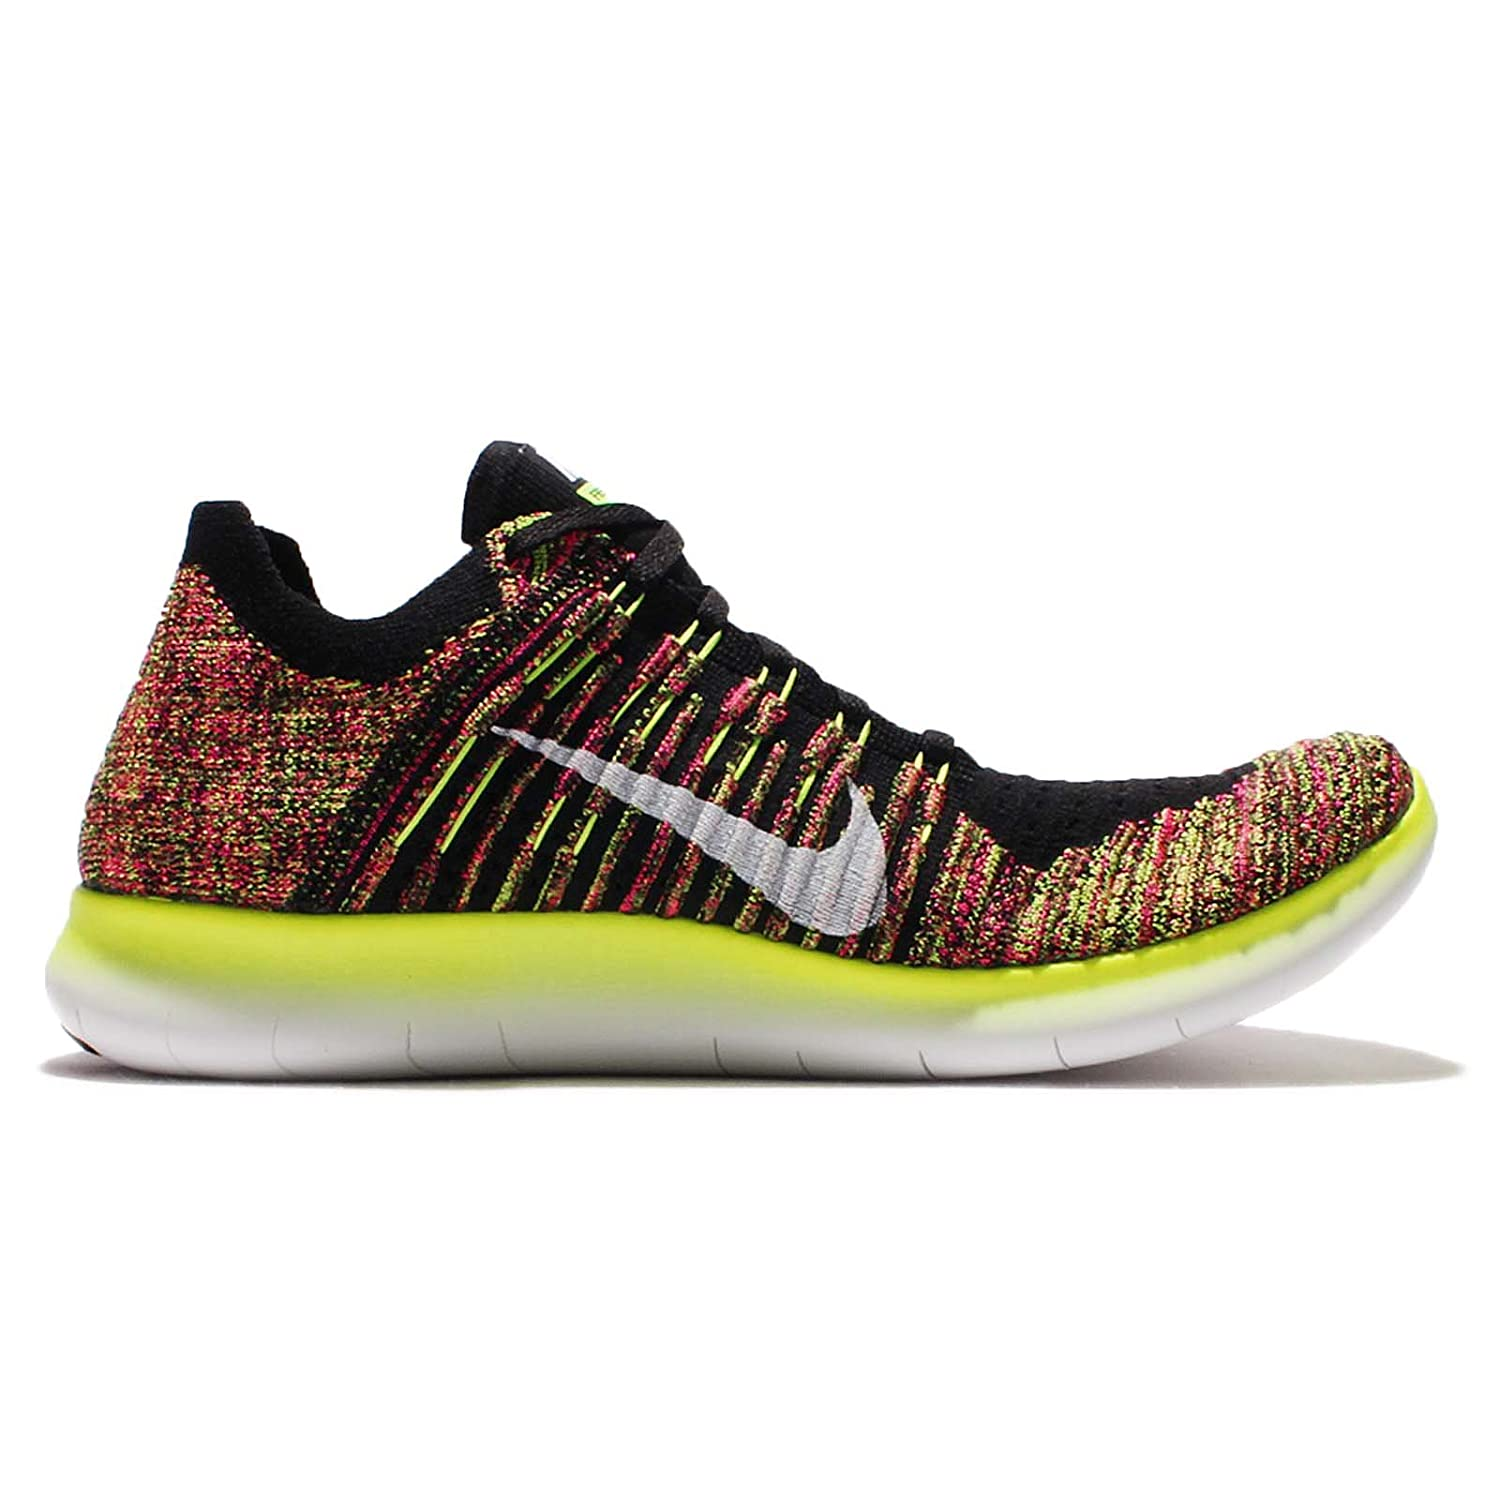 new style 5a5fd b6c73 Nike Free RN Flyknit Oc Mens Running Trainers 843430 Sneakers Shoes (UK 6.5  US 7.5 EU 40.5, Multi Color 999)  Buy Online at Low Prices in India - Amazon .in